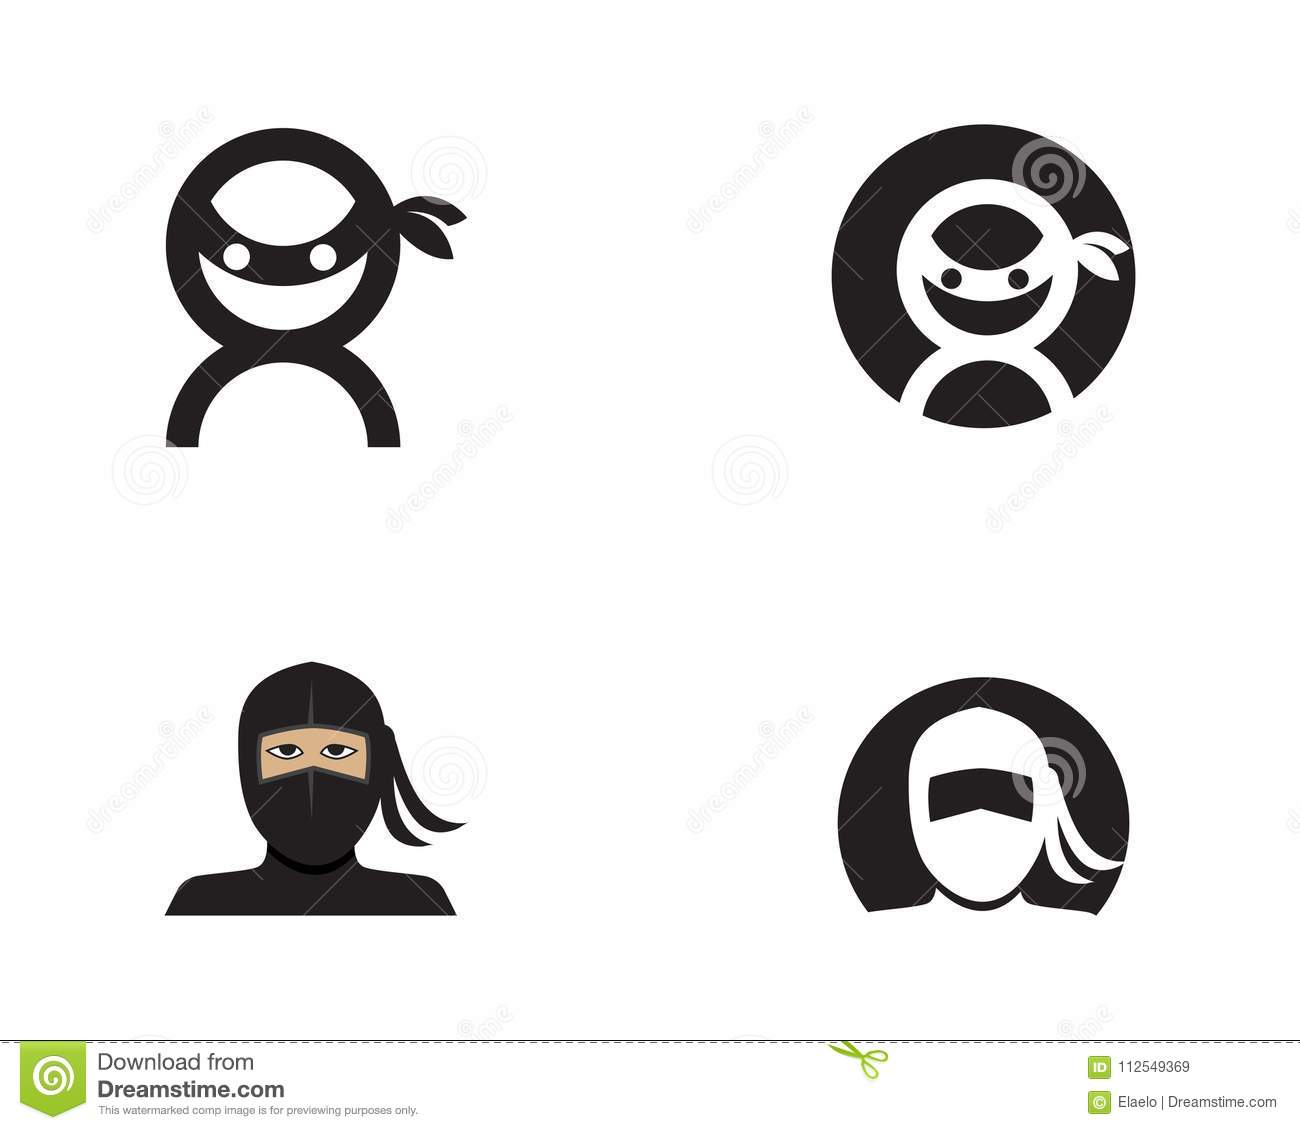 ninja icon vector illustration stock vector illustration of